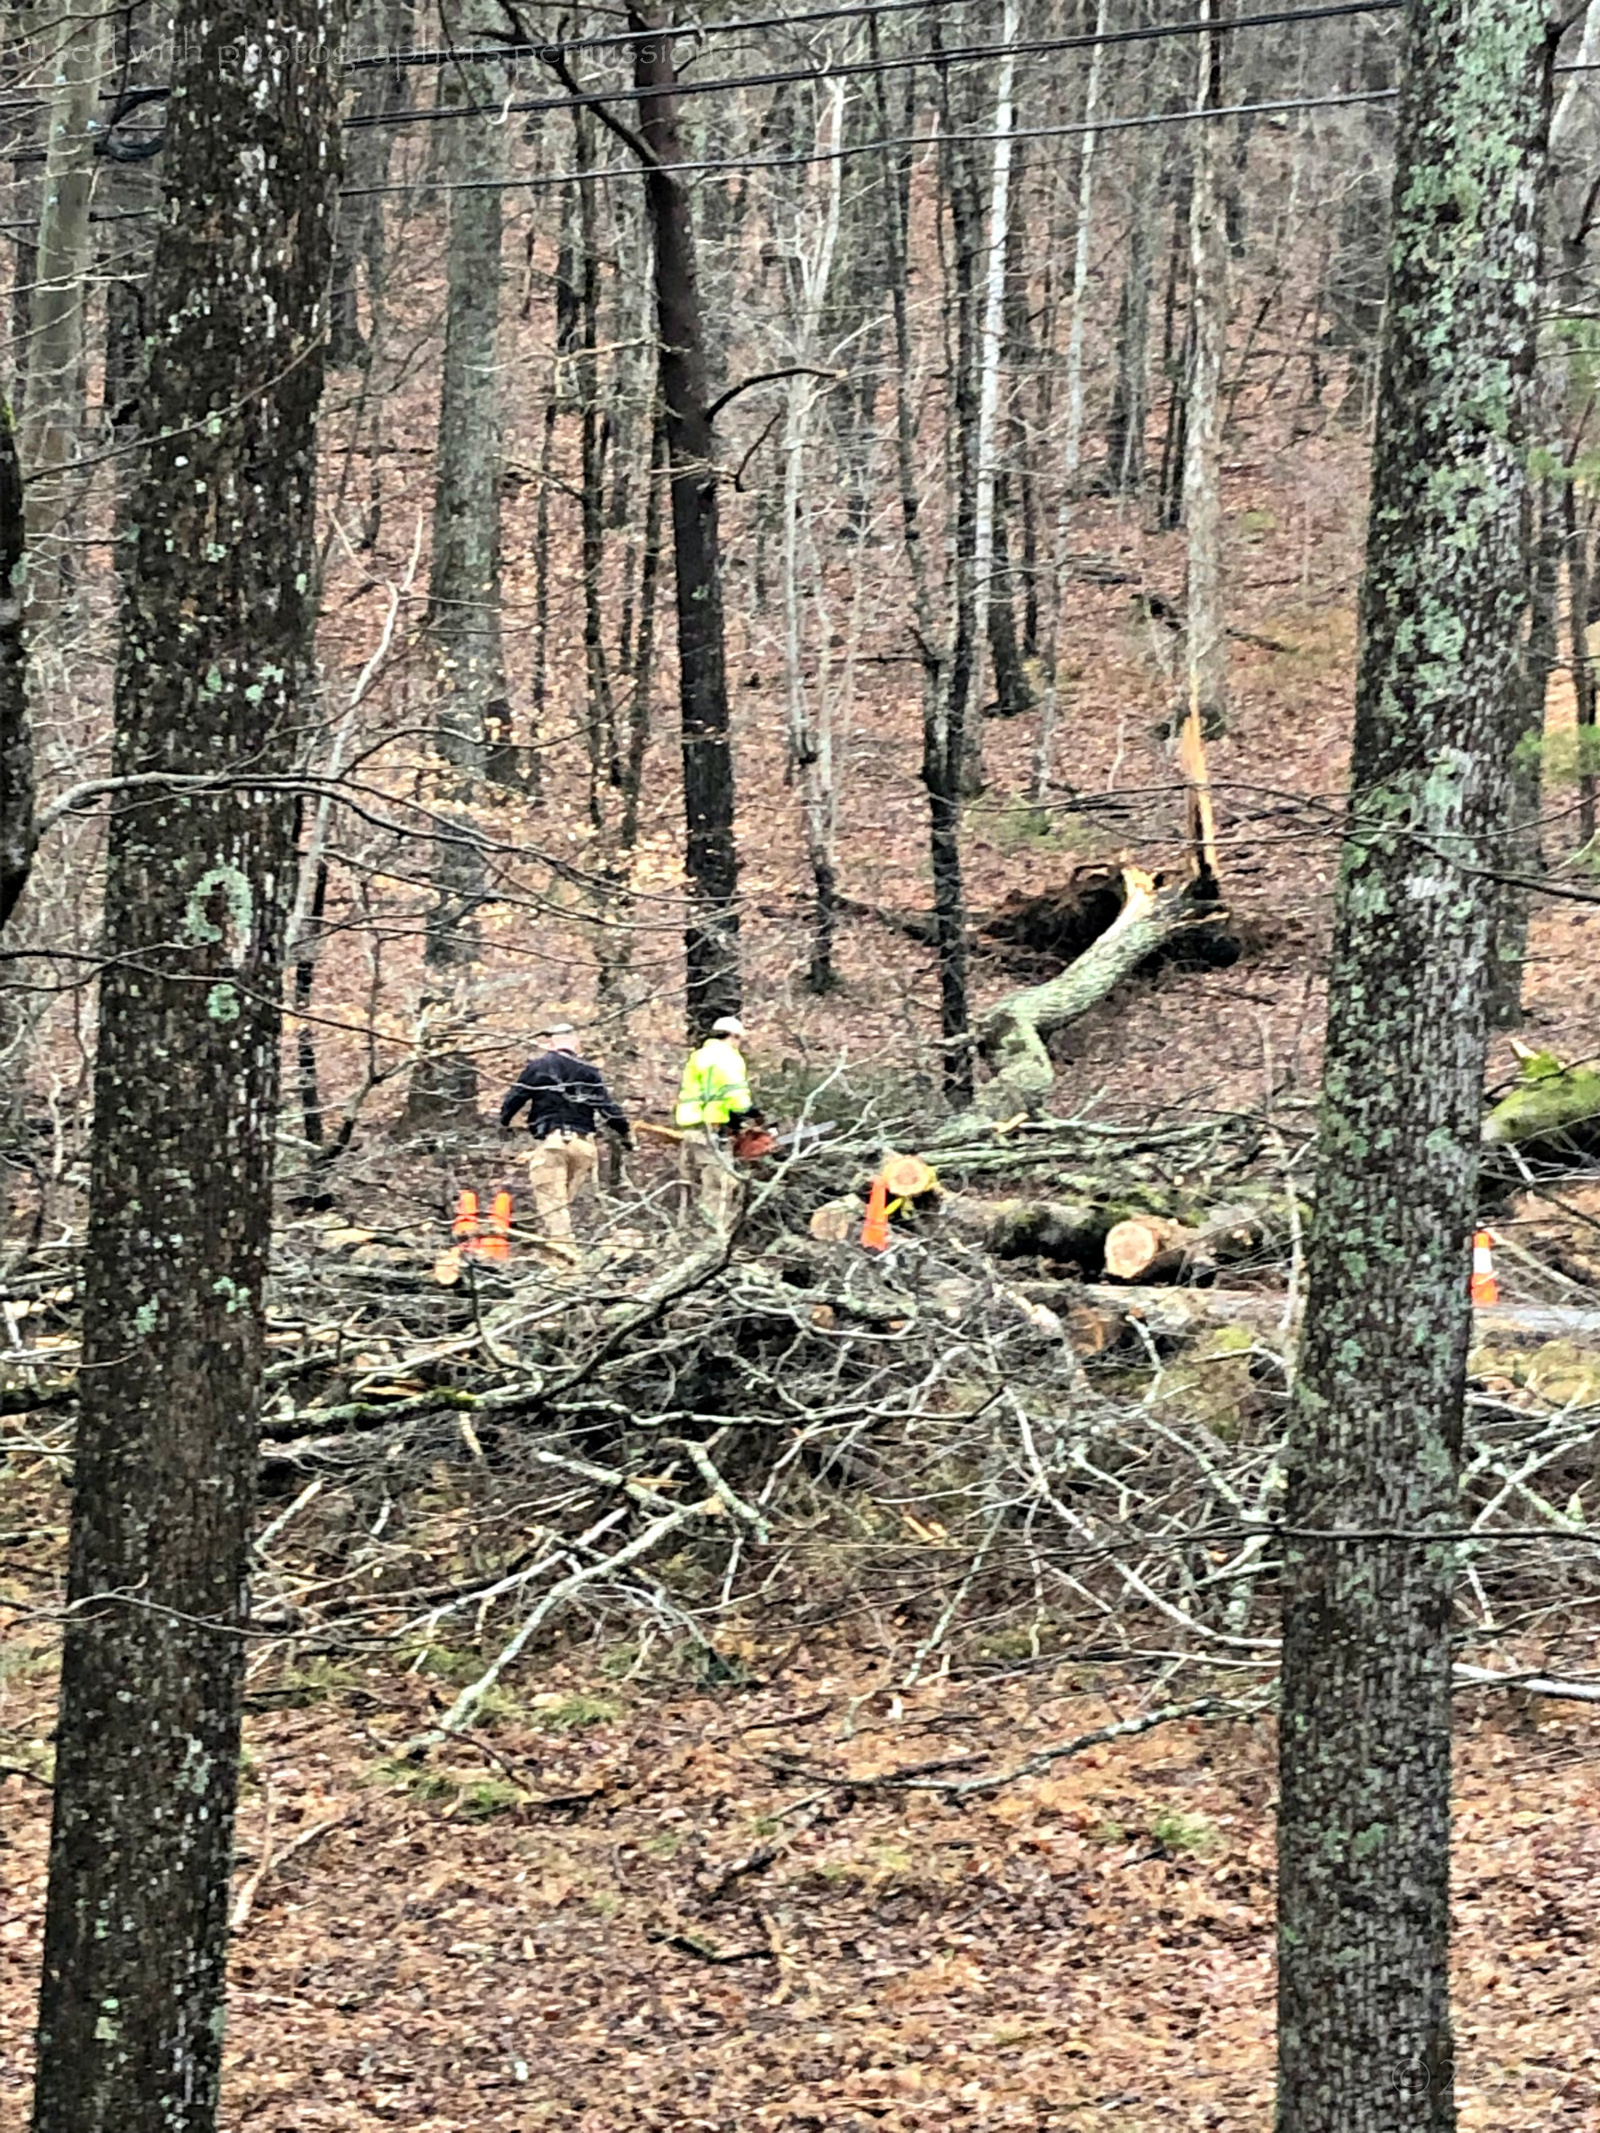 January 13, 2019 - Public Safety at work clearing Little Pine Mountain Rd